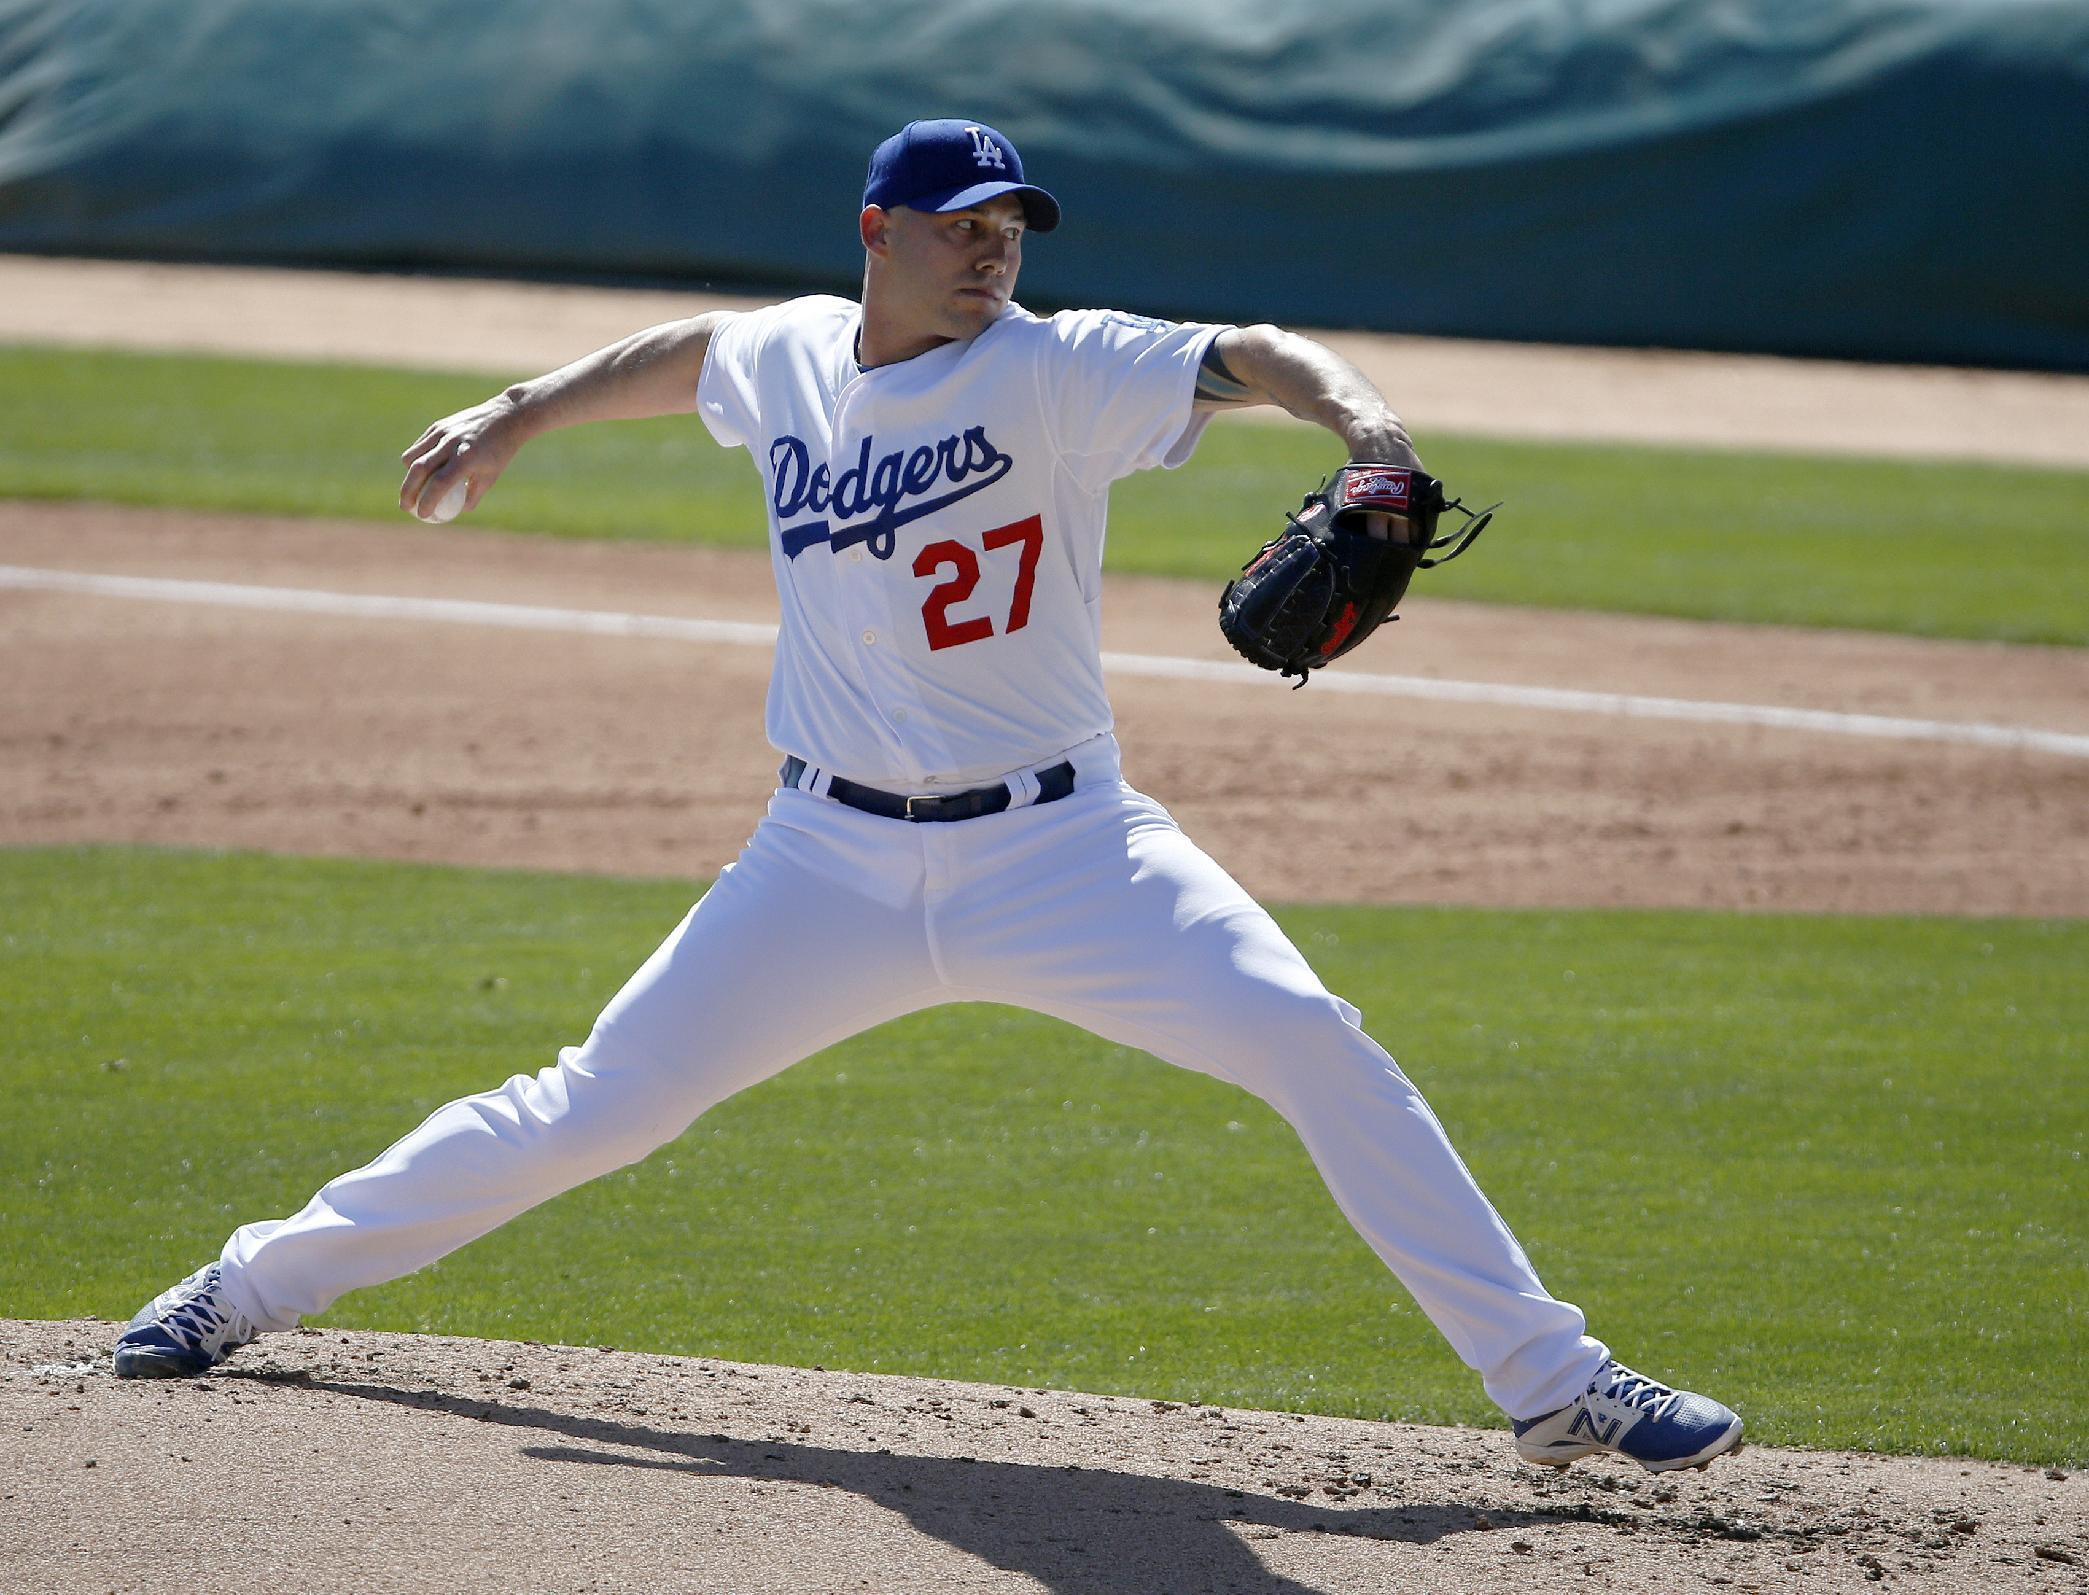 Dodgers release McGowan, owe former players $43.8M